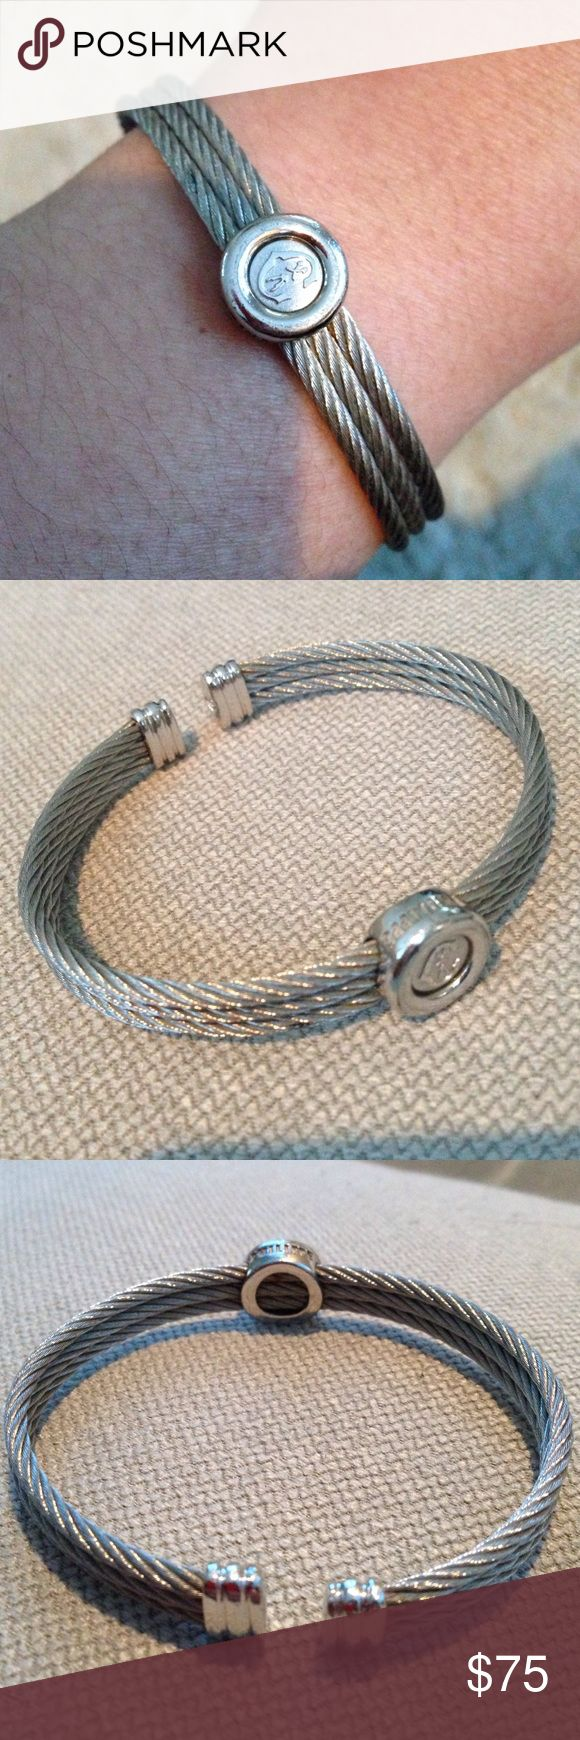 Philippe Charriol cable bangle bracelet Classic bracelet at a bargain price! Authentic - just don't wear it anymore. Philippe Charriol Jewelry Bracelets